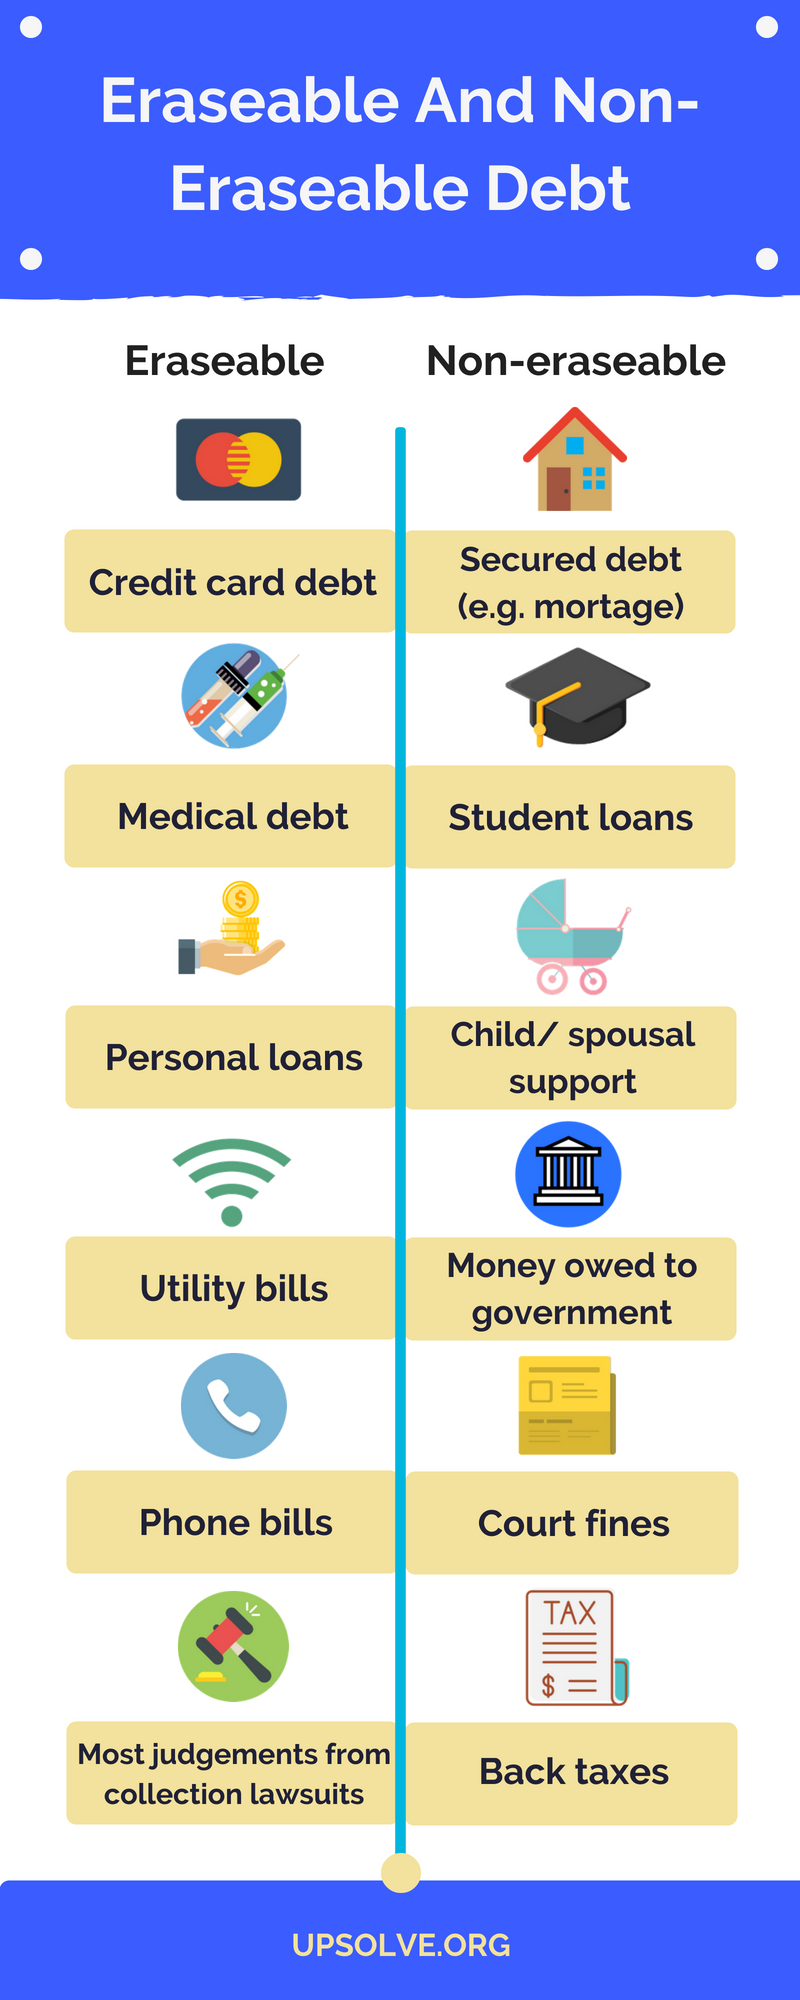 Many Of Your Debts Can Be Erased Via Chapter 7 Bankruptcy However A Few Debts Cannot Be Erased Medical Debt Personal Loans Mortage